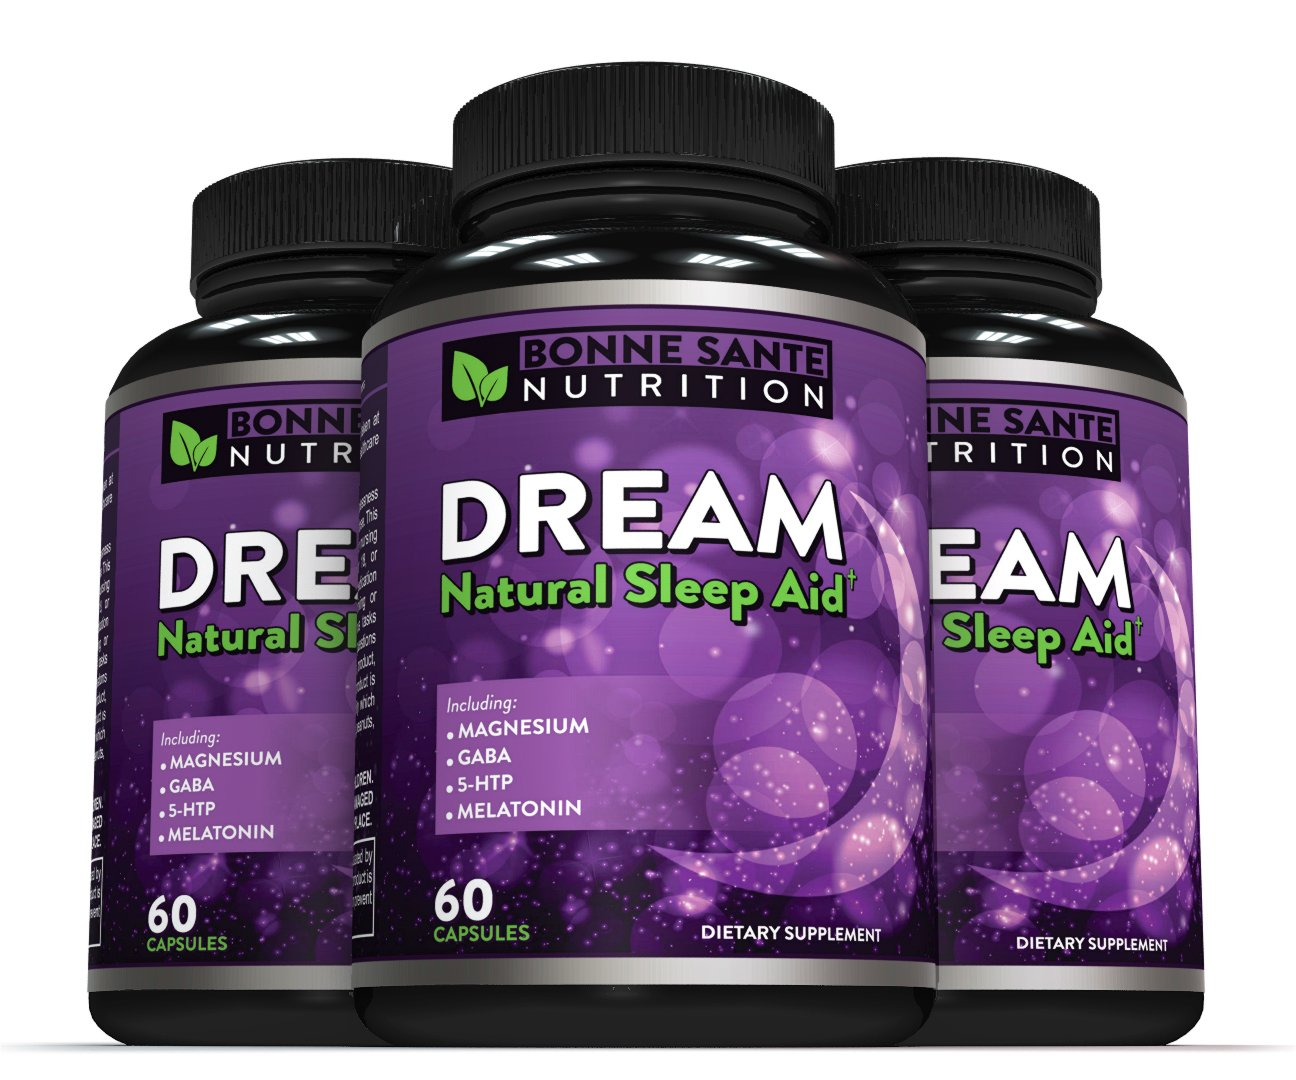 Amazon.com: Dream- Natural Sleep Aid - Includes Magnesium - GABA - 5-HTP - Melatonin, Supports Relaxation, Deep Sleep, and Refreshed Mornings, ...